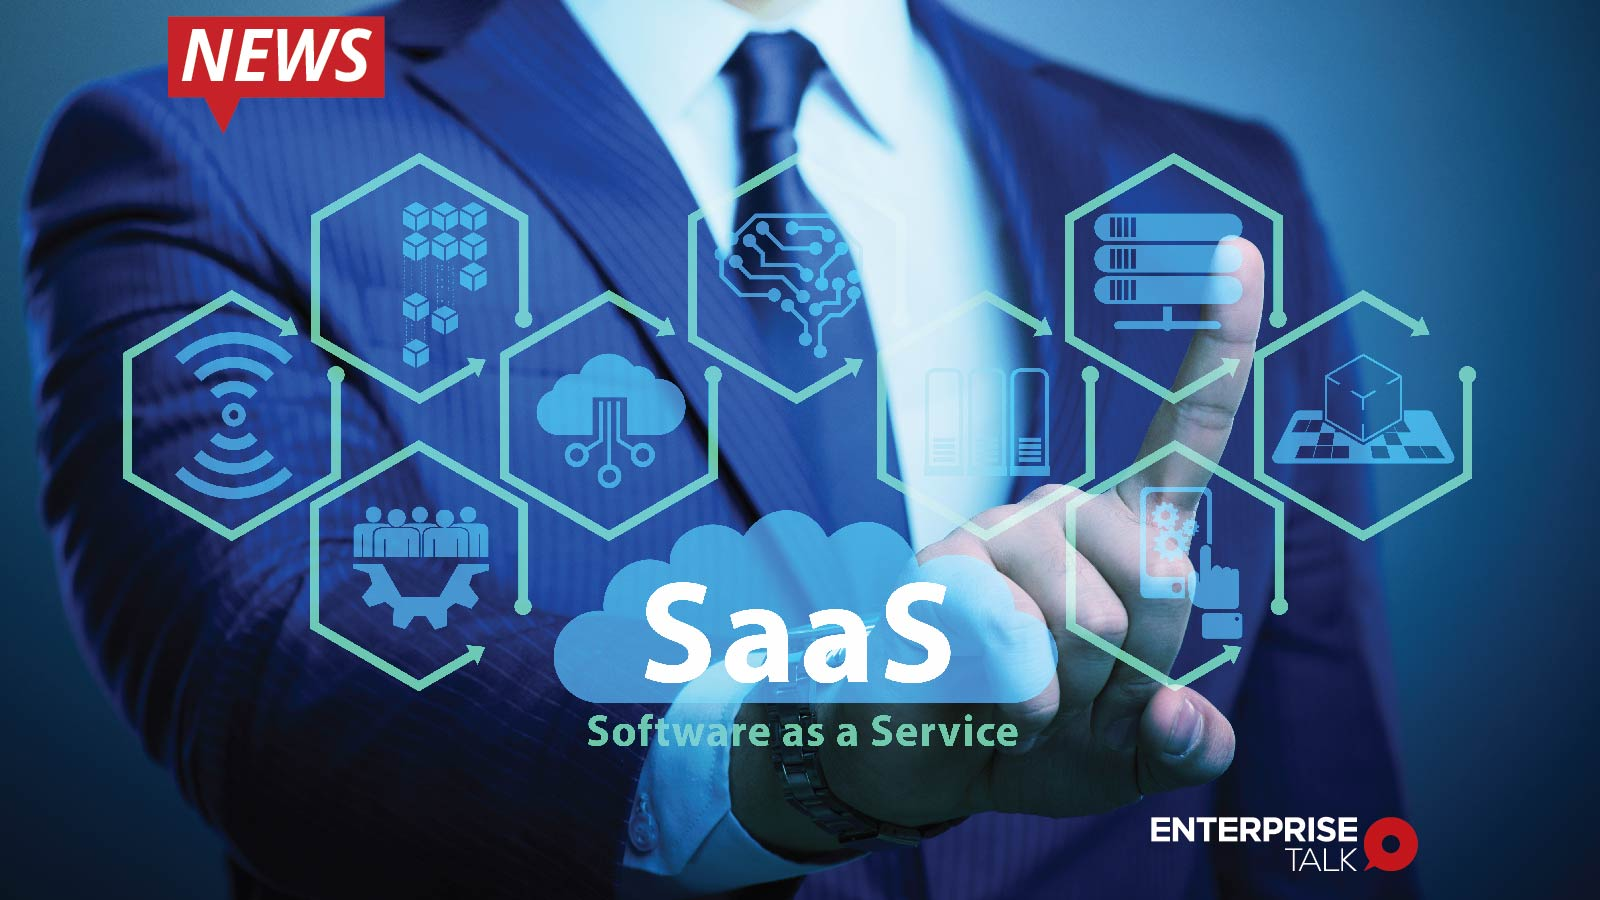 Latch_ Maker of Full-Building Enterprise SaaS Platform LatchOS_ to Merge with Tishman Speyer-Sponsored SPAC and Become Publicly Listed Company